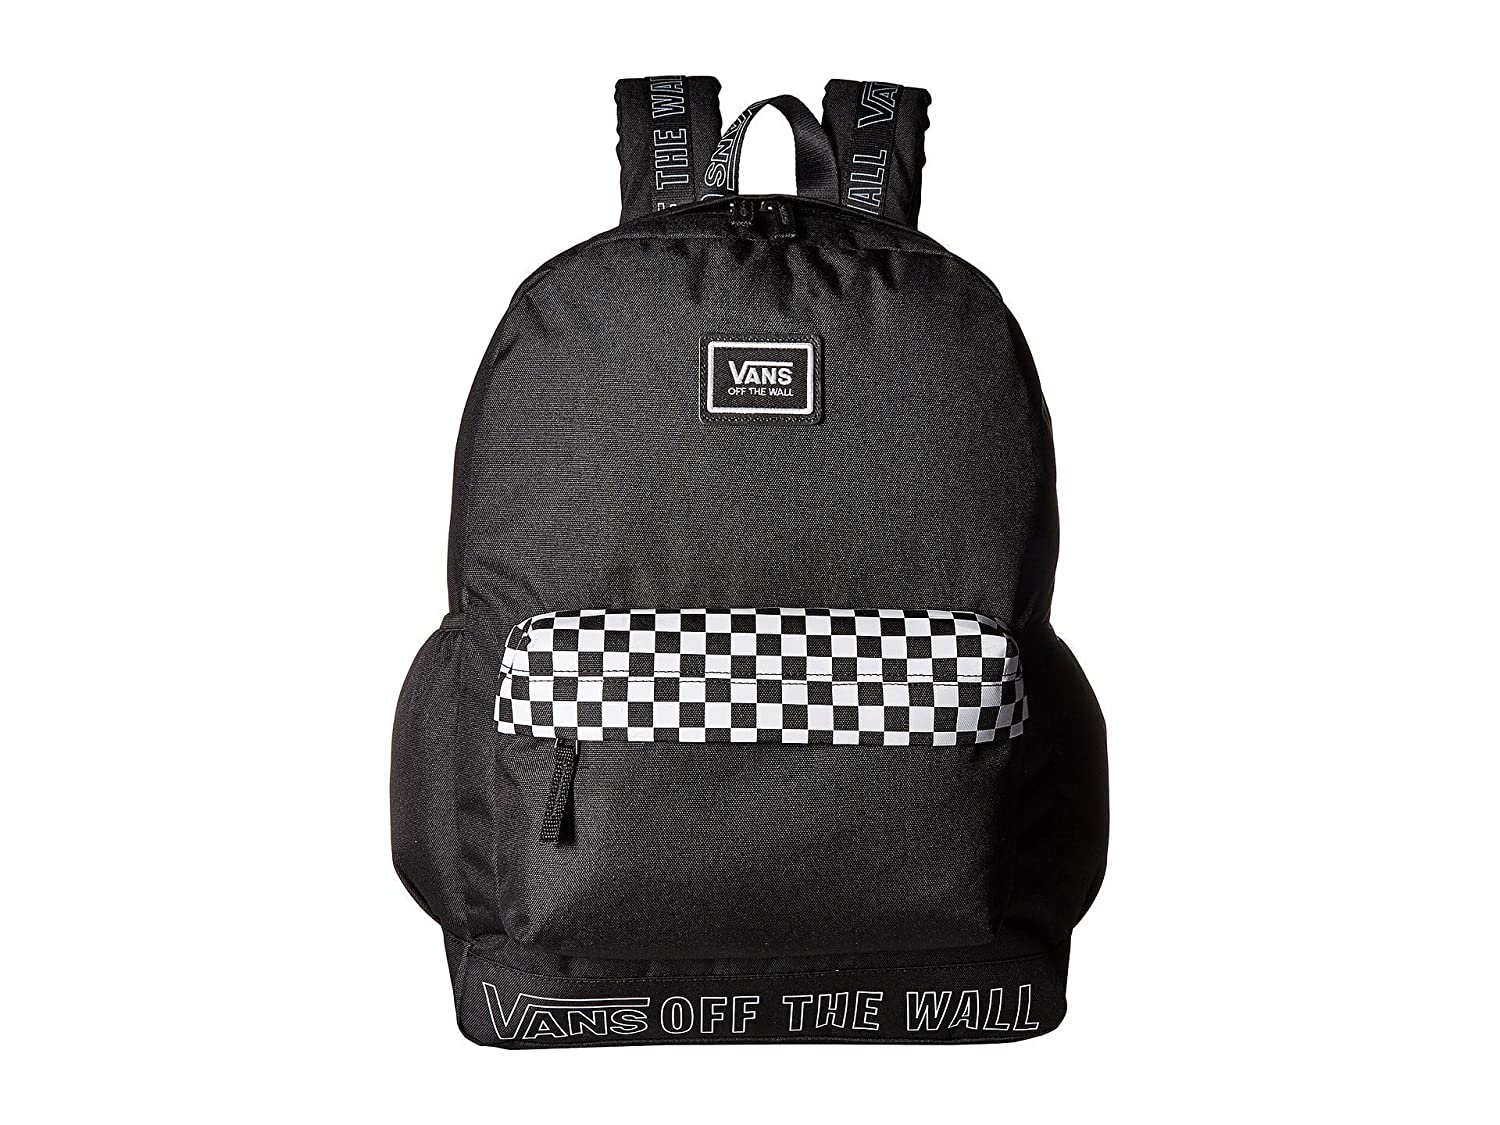 [VANS(バンズ)] リュックバックパック Sporty Realm Plus Backpack [並行輸入品] One Size Black/Surround B07P7Q7VNM